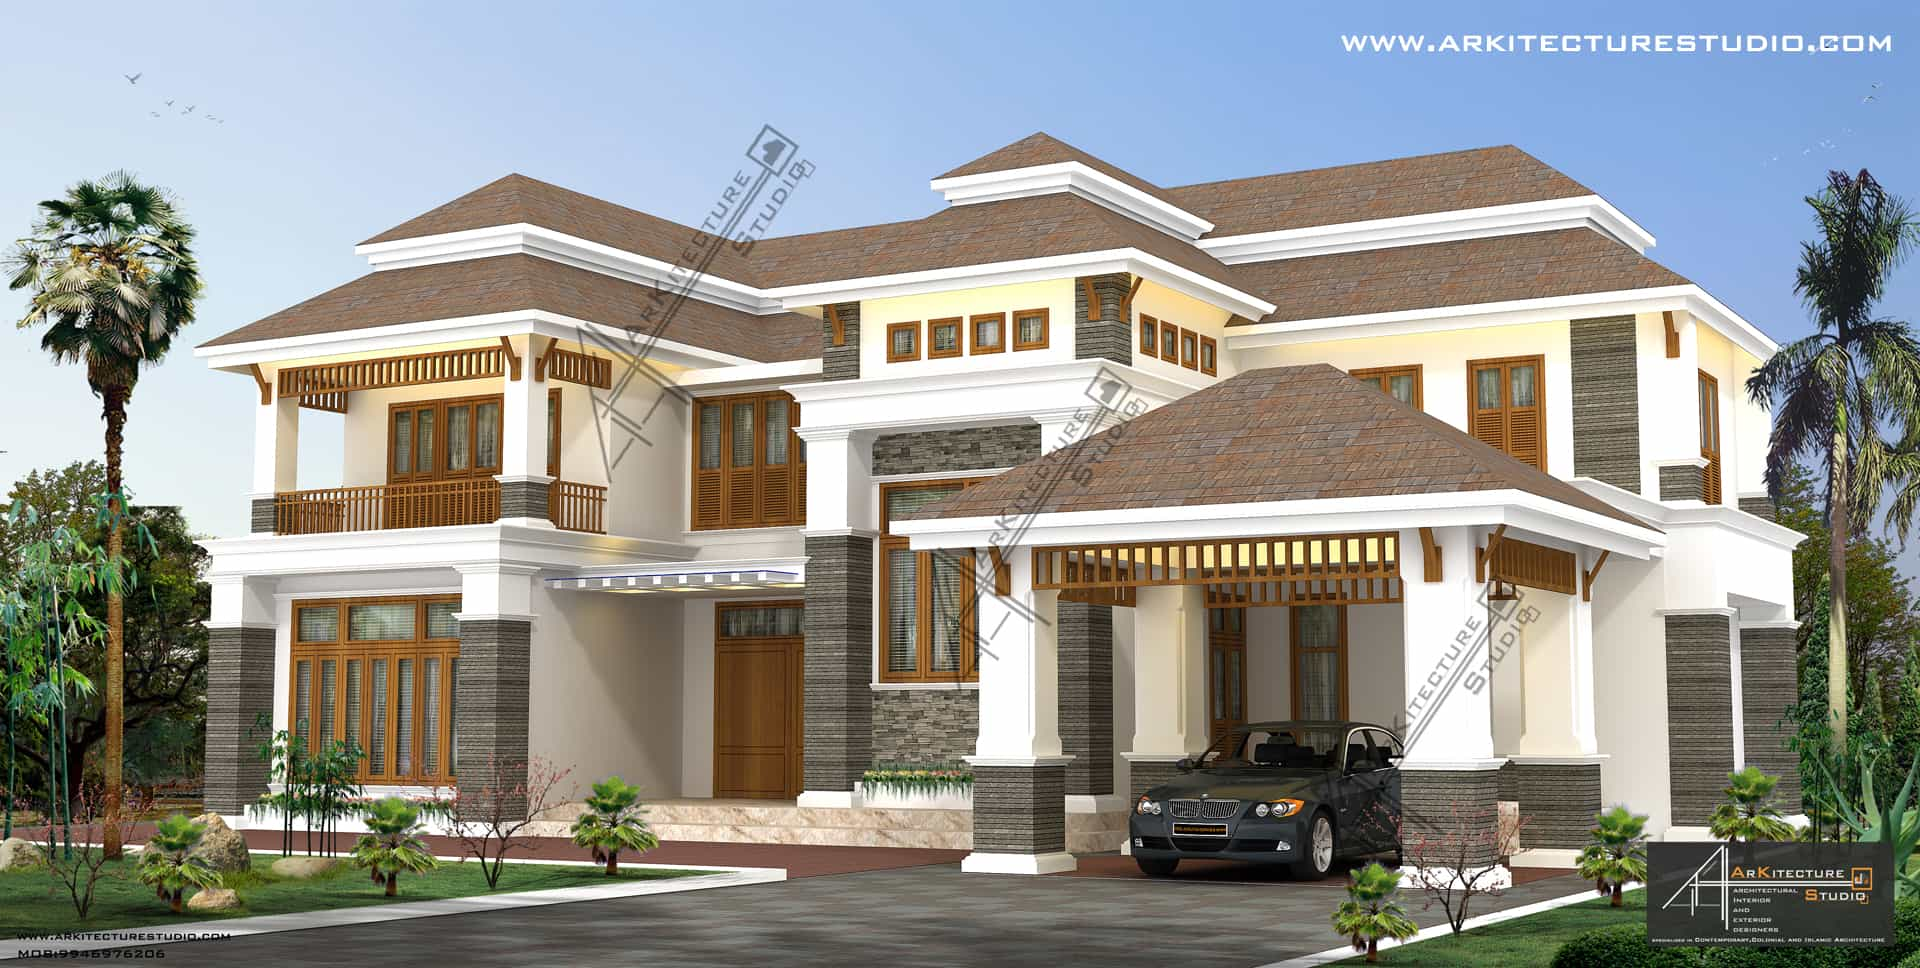 Colonial style house designs in kerala at 3500 sqft 5000 for Colonial house style